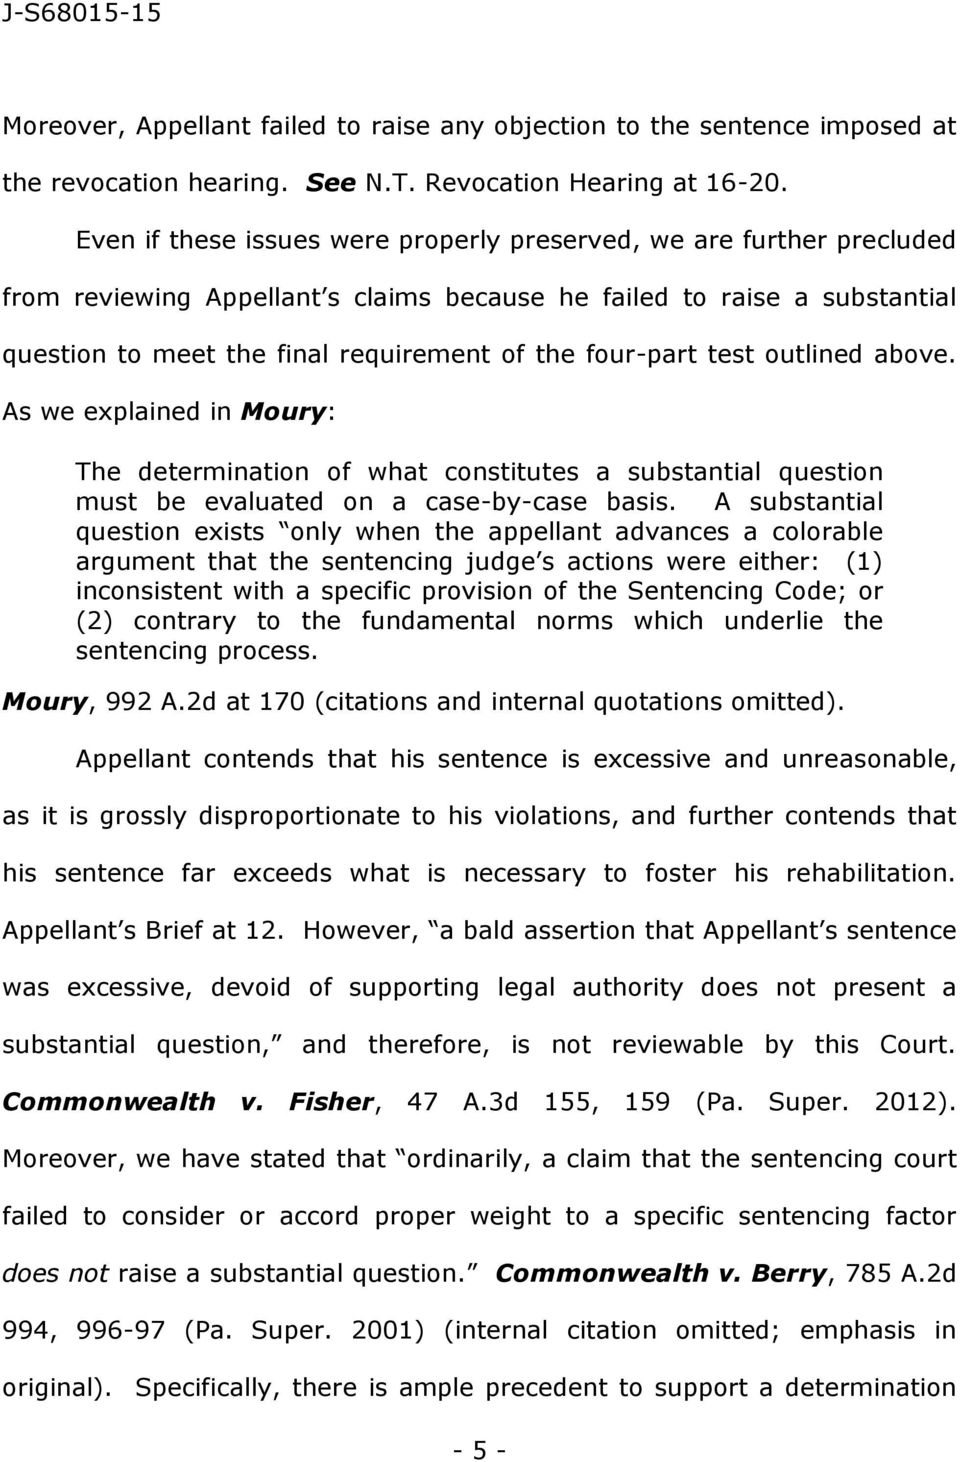 four-part test outlined above. As we explained in Moury: The determination of what constitutes a substantial question must be evaluated on a case-by-case basis.